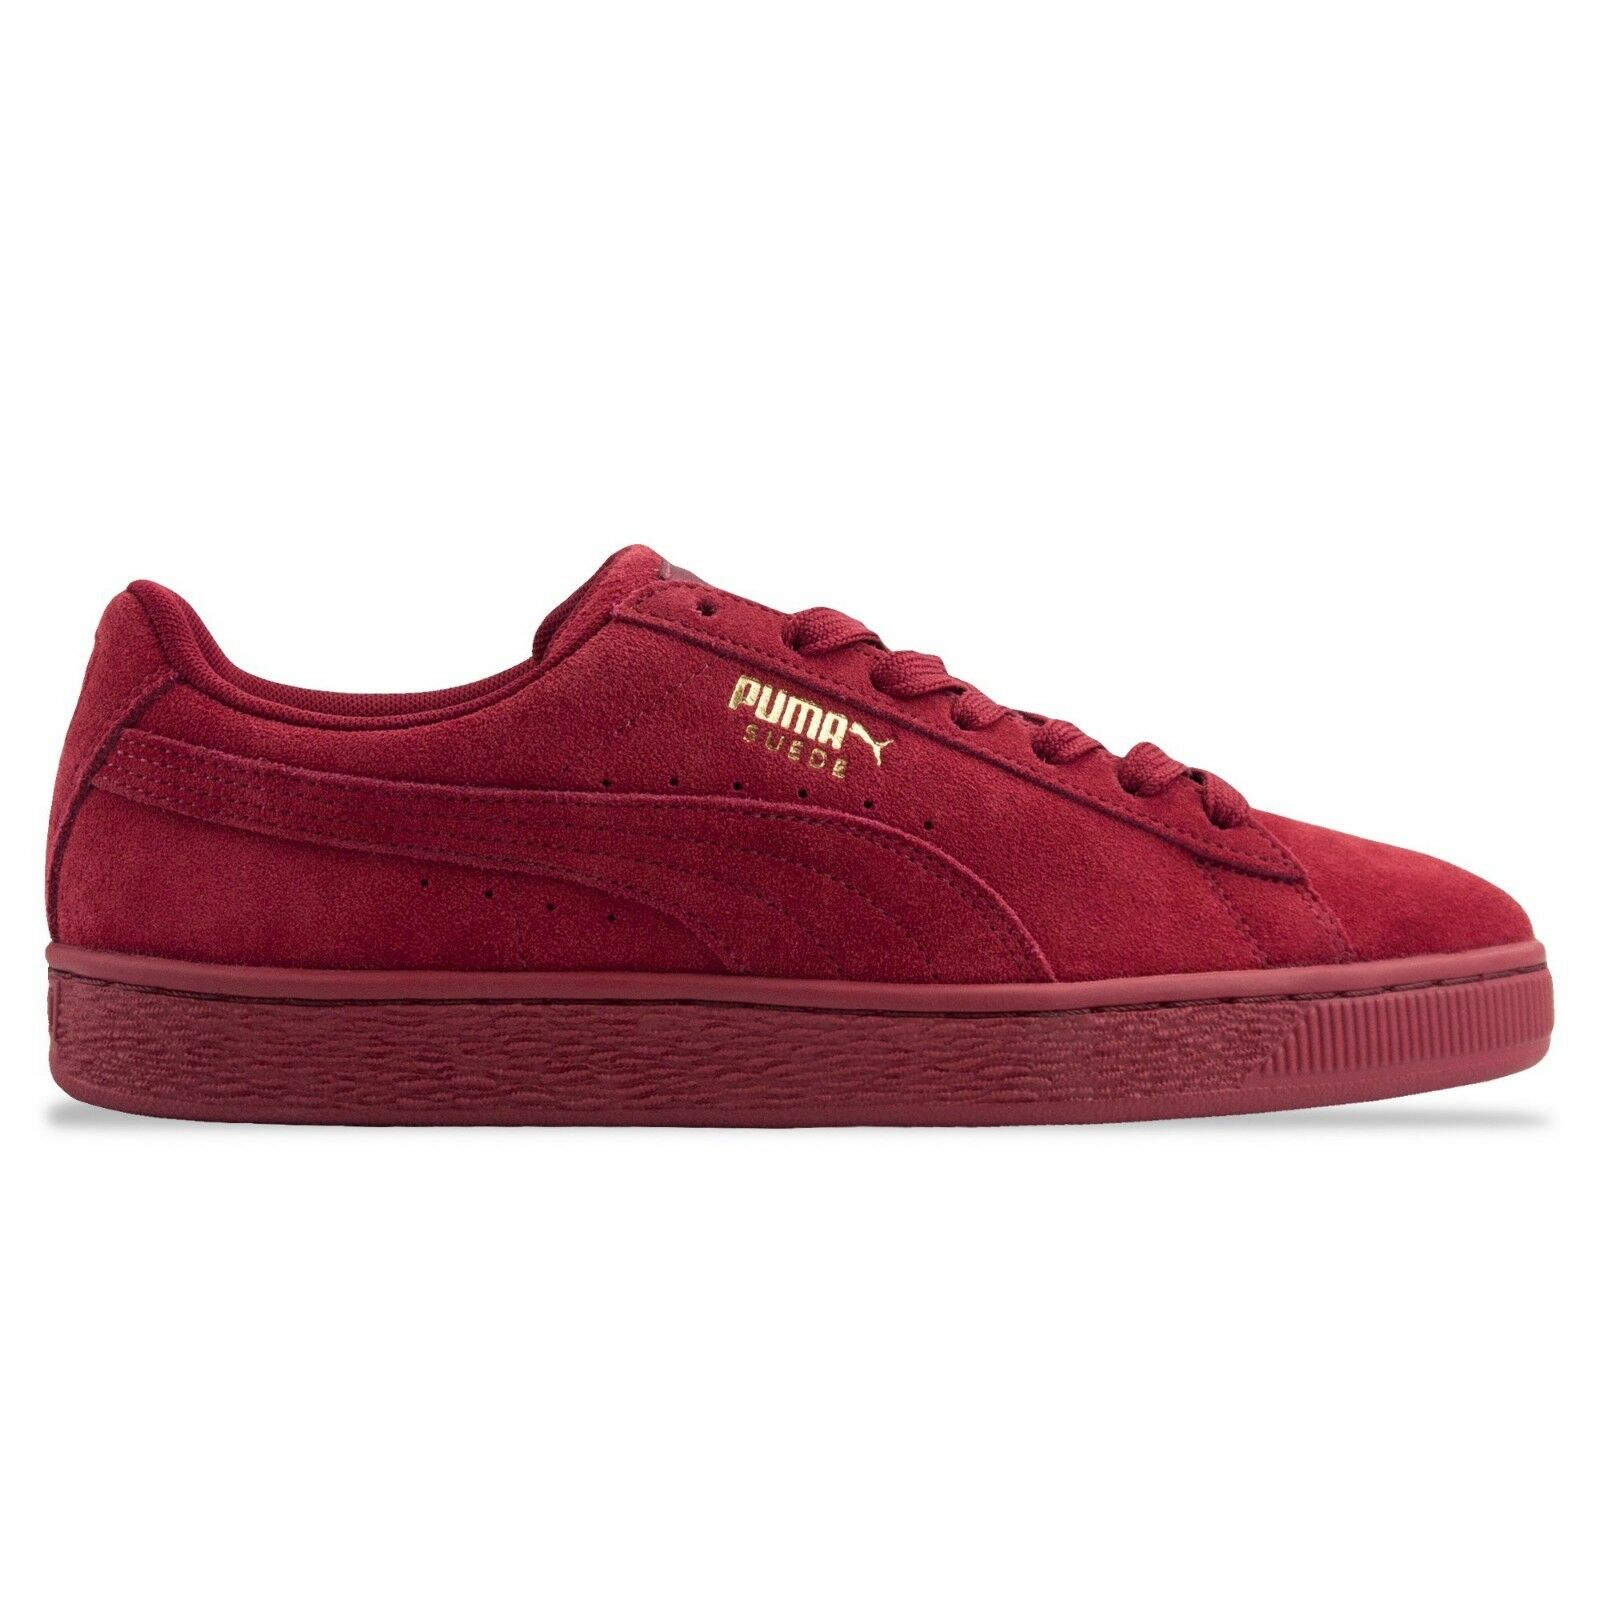 PUMA SUEDE CLASSIC TRAINERS - NAVY, BLACK, Blau, BURGUNDY, GREY, NAVY, - GREEN & MORE ac269e